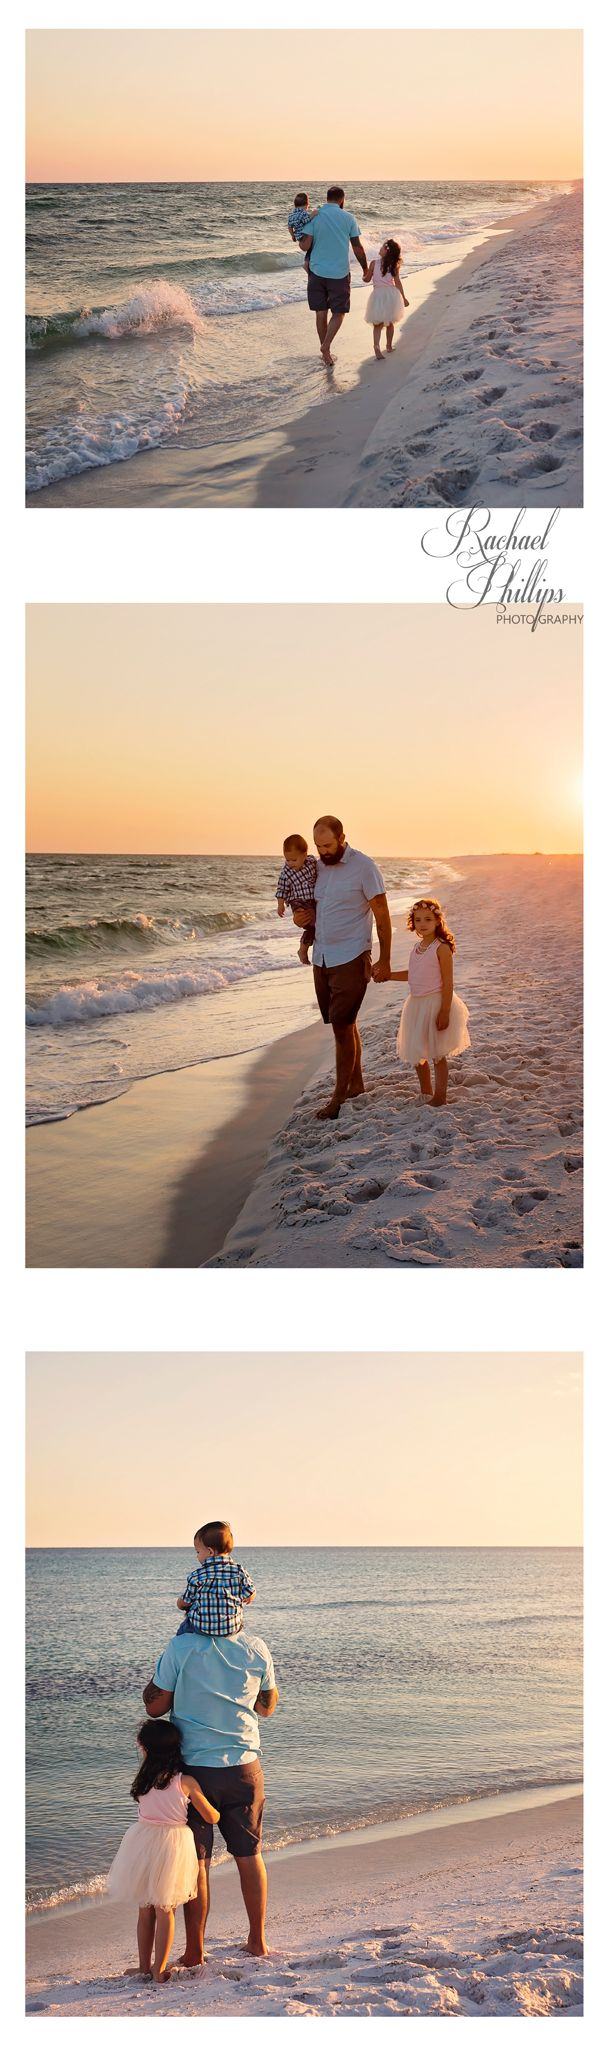 Rachael Phillips Photography  l  2016  l  Navarre, FL   Father Kids Beach Photo, Father Daughter, Father Son